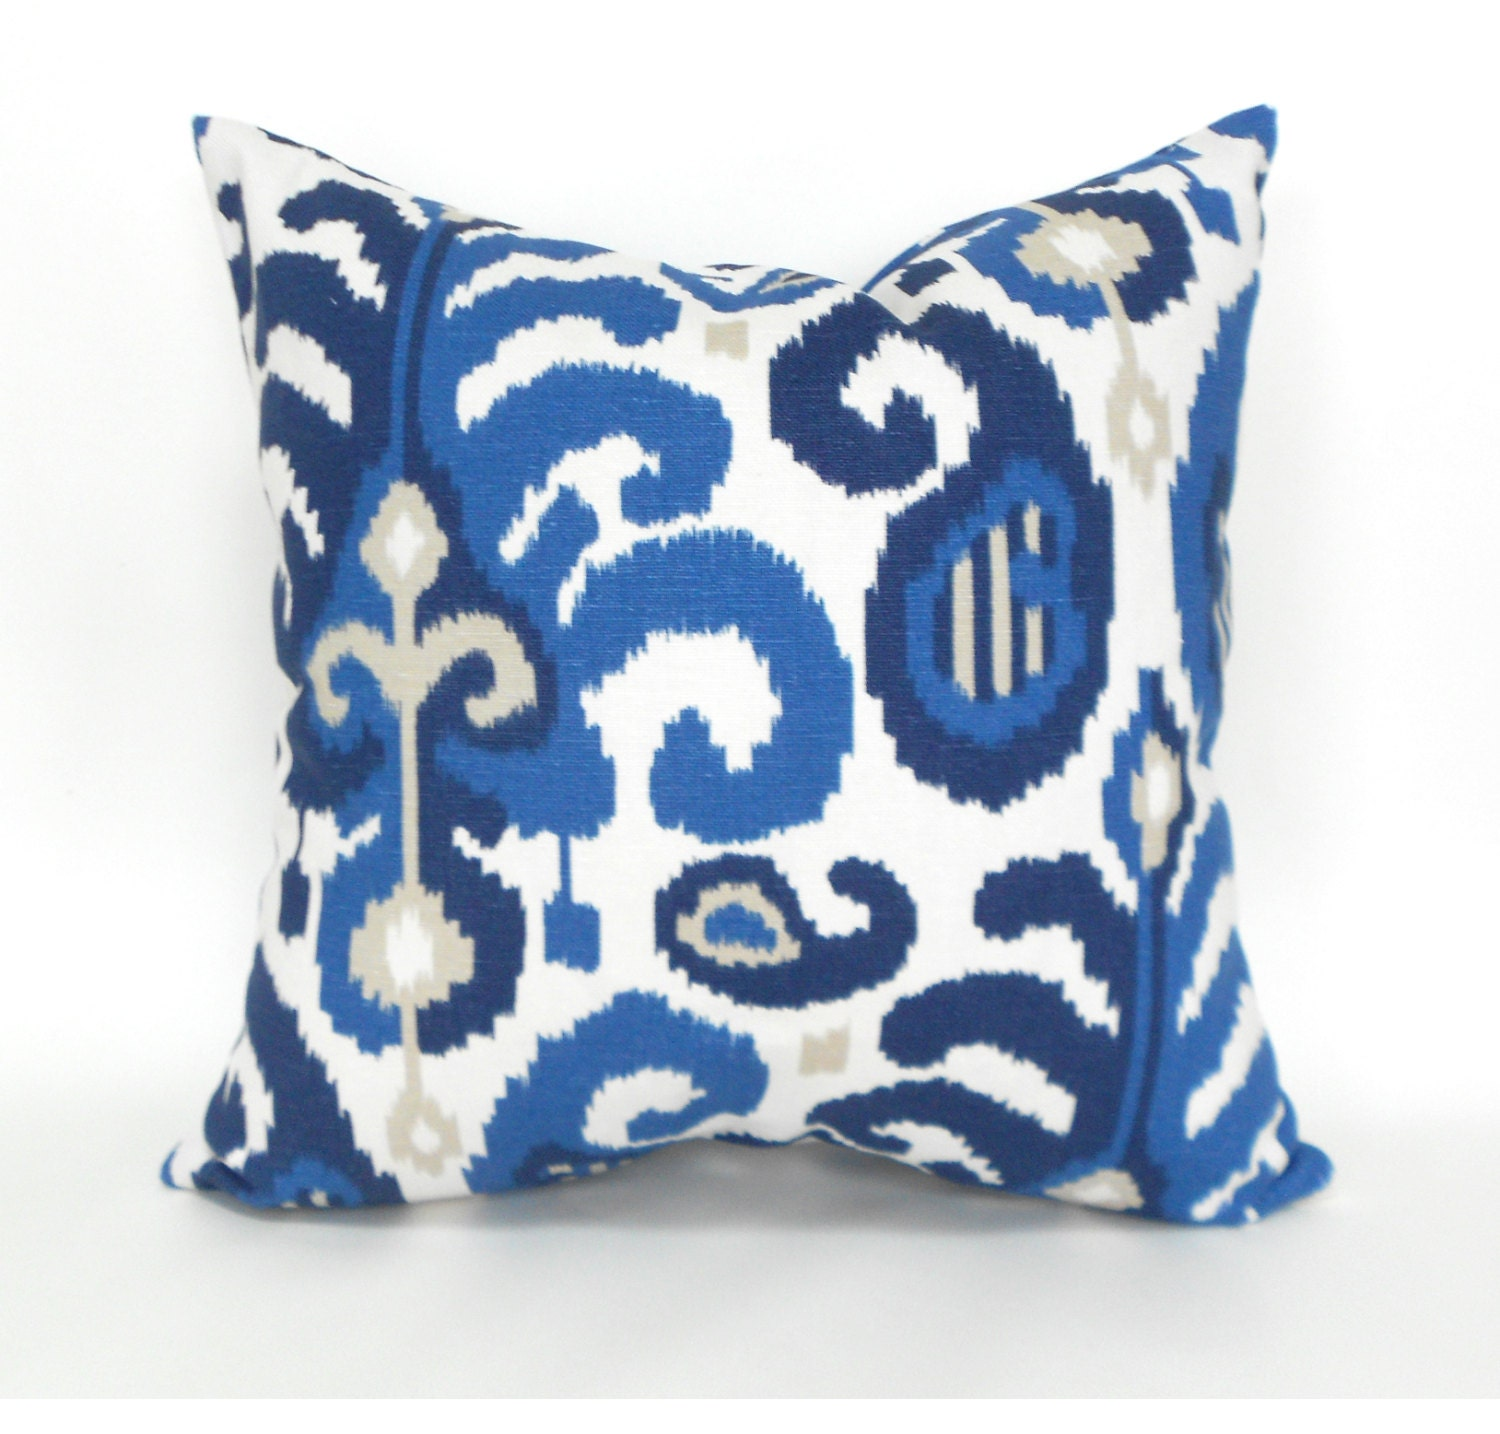 Throw Pillow Cover Dimensions : Pillow Covers ANY SIZE Decorative Pillow Cover by MyPillowStudio